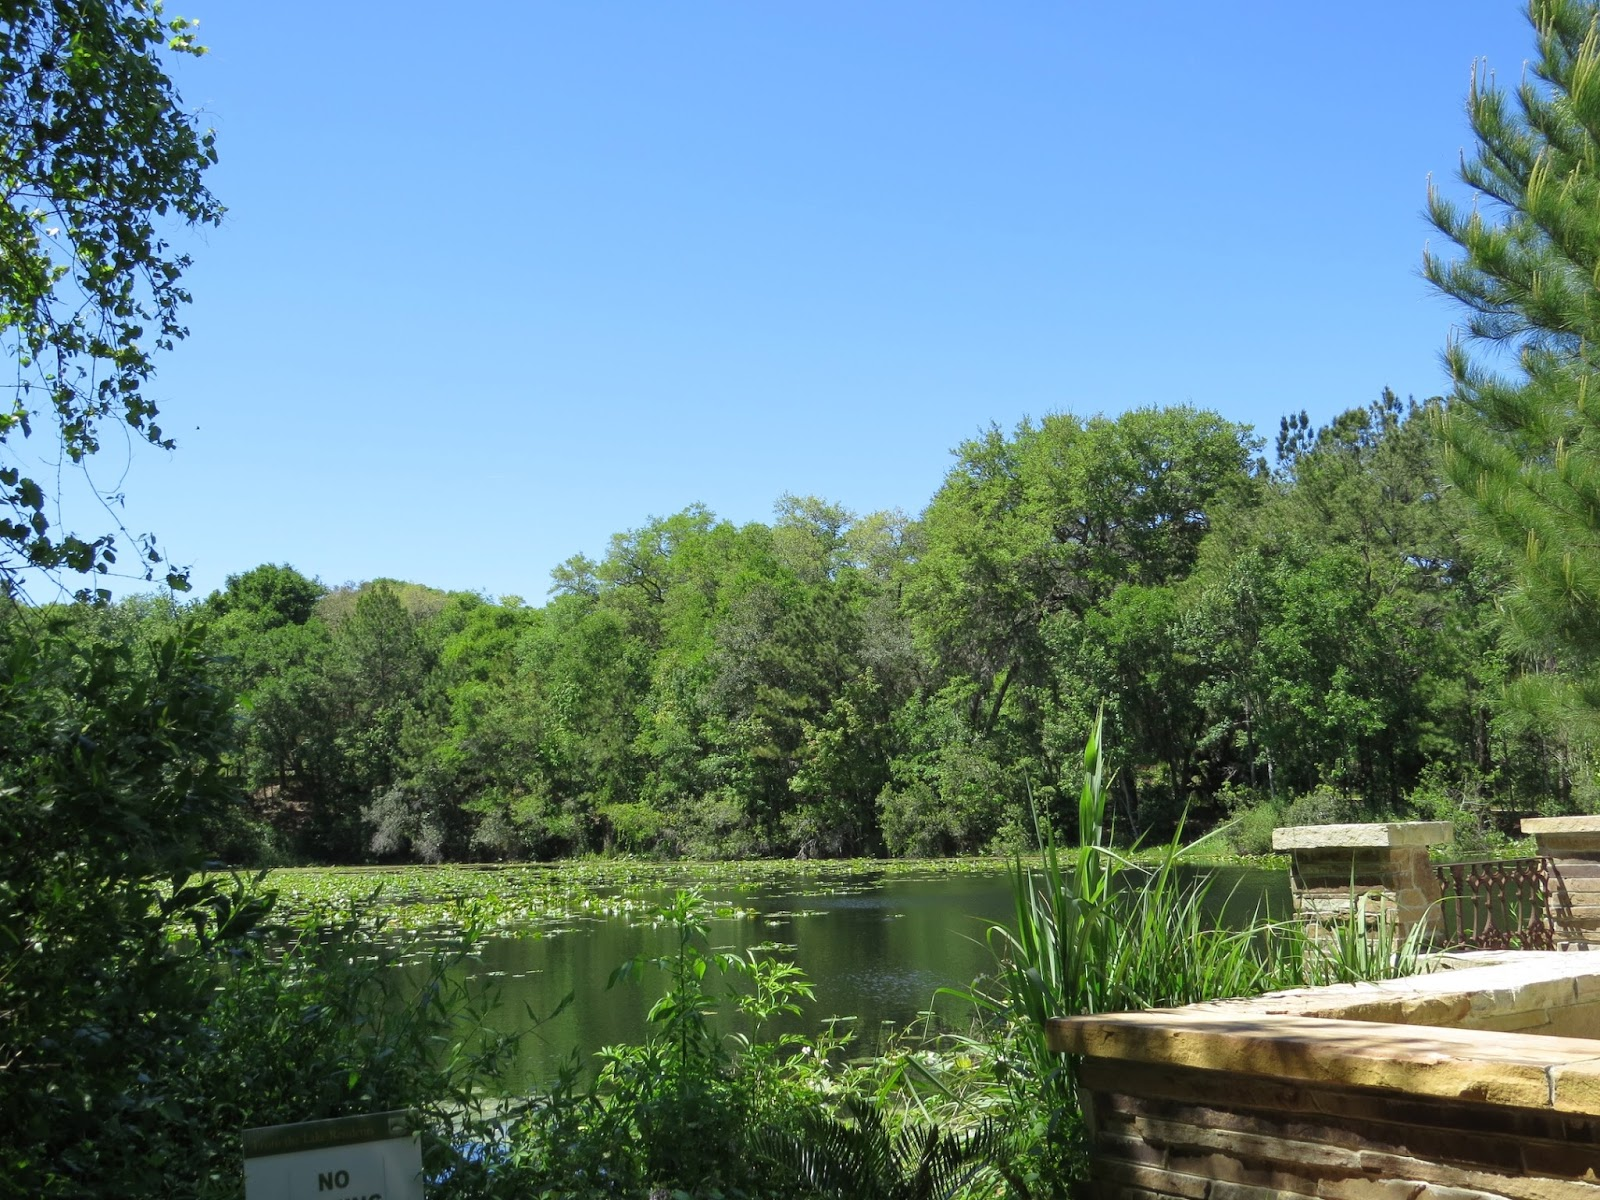 Creative Everyday Life With Mary Lemmenes Visiting The Jacksonville Arboretum And Gardens